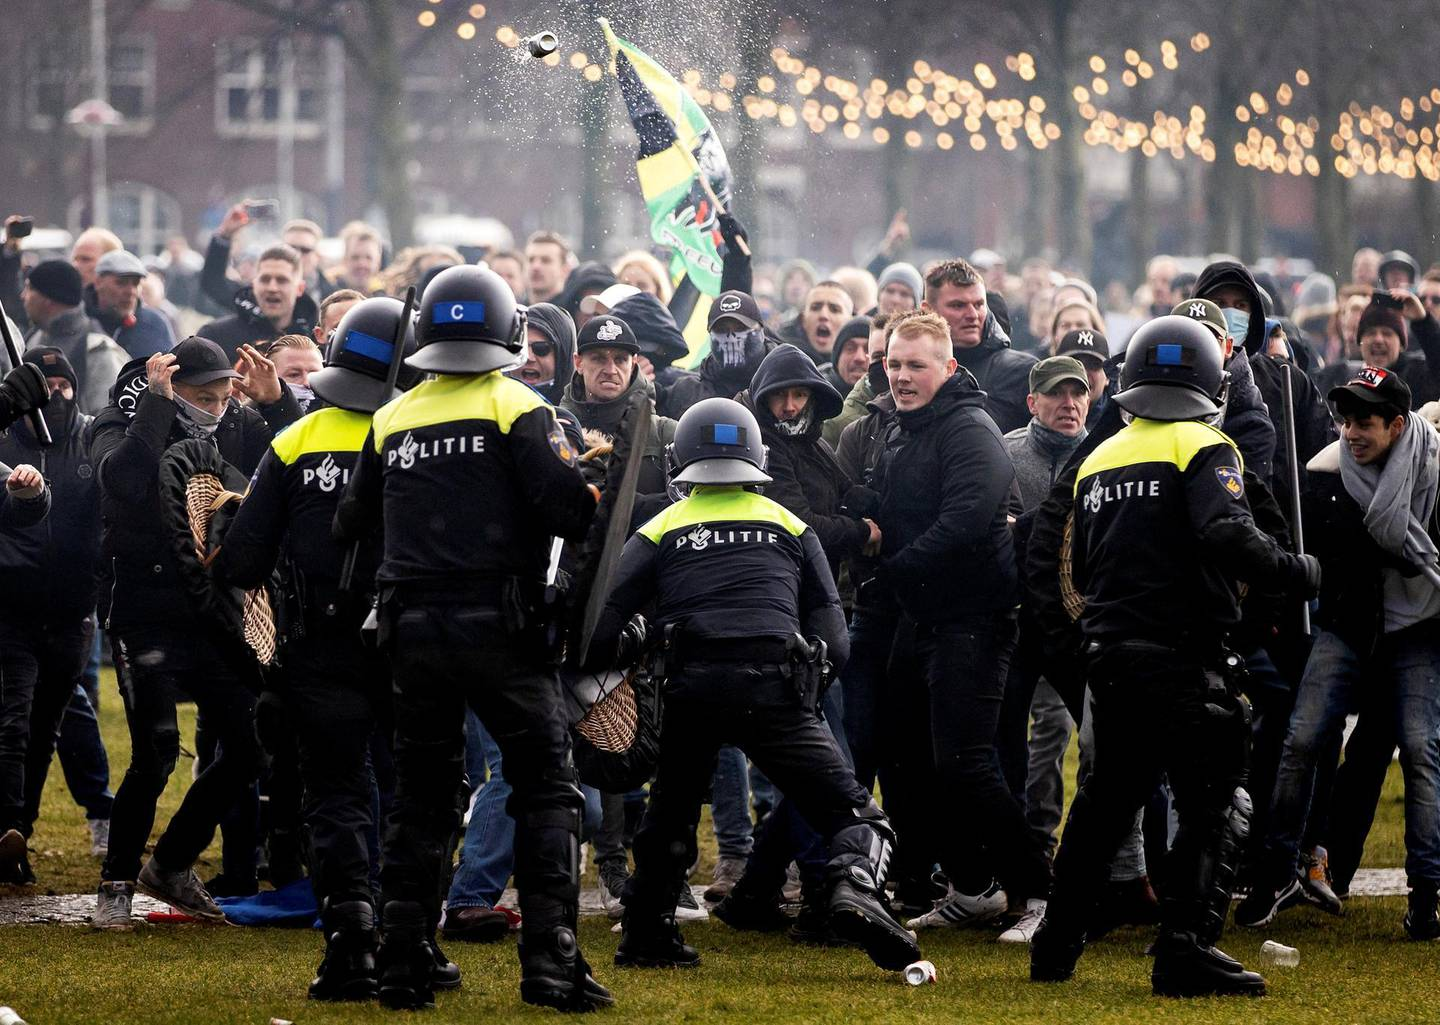 Anti-government activist face off with Dutch police during a protest to denounce ongoing restrictions related to the coronavirus disease (COVID-19) pandemic in Museumplein, Amsterdam on January 17, 2021. (Photo by ROBIN VAN LONKHUIJSEN / ANP / AFP) / Netherlands OUT